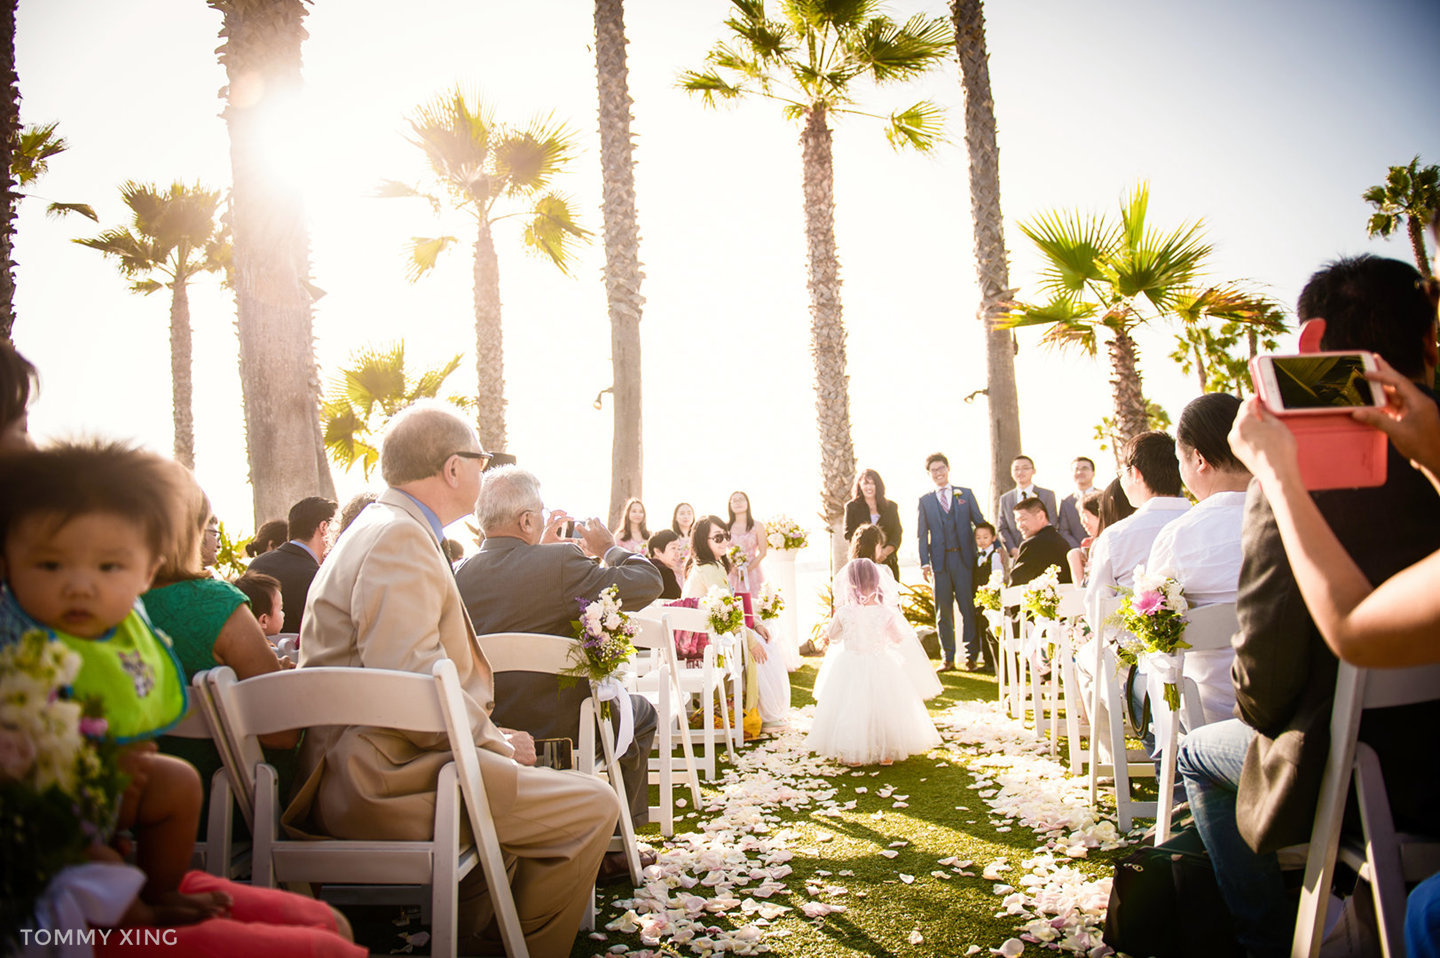 Paradise Point Resort Wedding Xiaolu & Bin San Diego 圣地亚哥婚礼摄影跟拍 Tommy Xing Photography 洛杉矶婚礼婚纱照摄影师 102.jpg